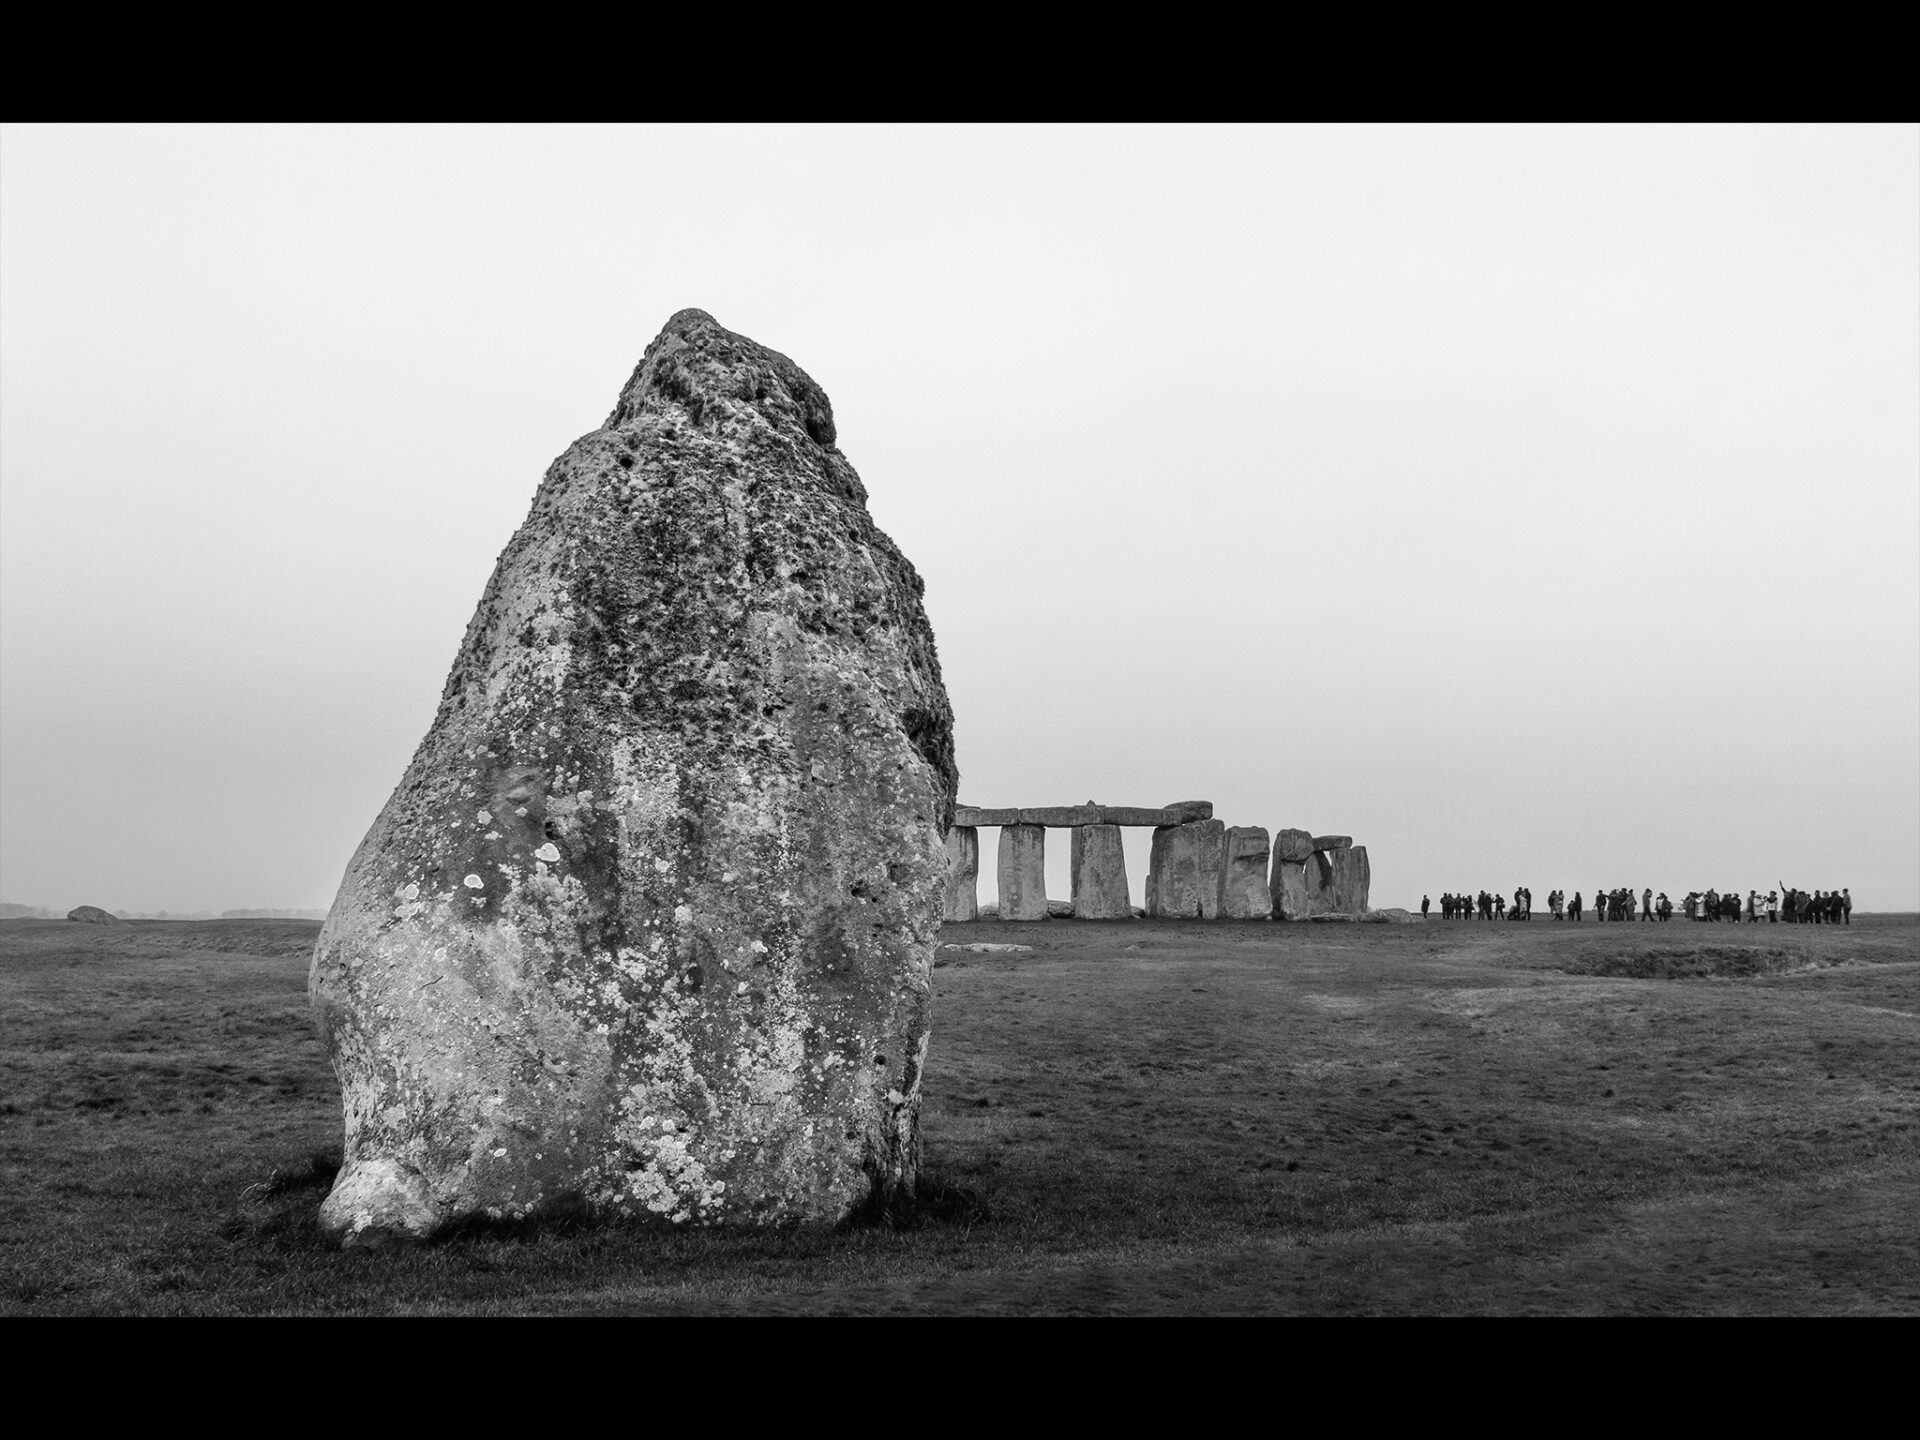 Black and While image of Stonehenge from a distance